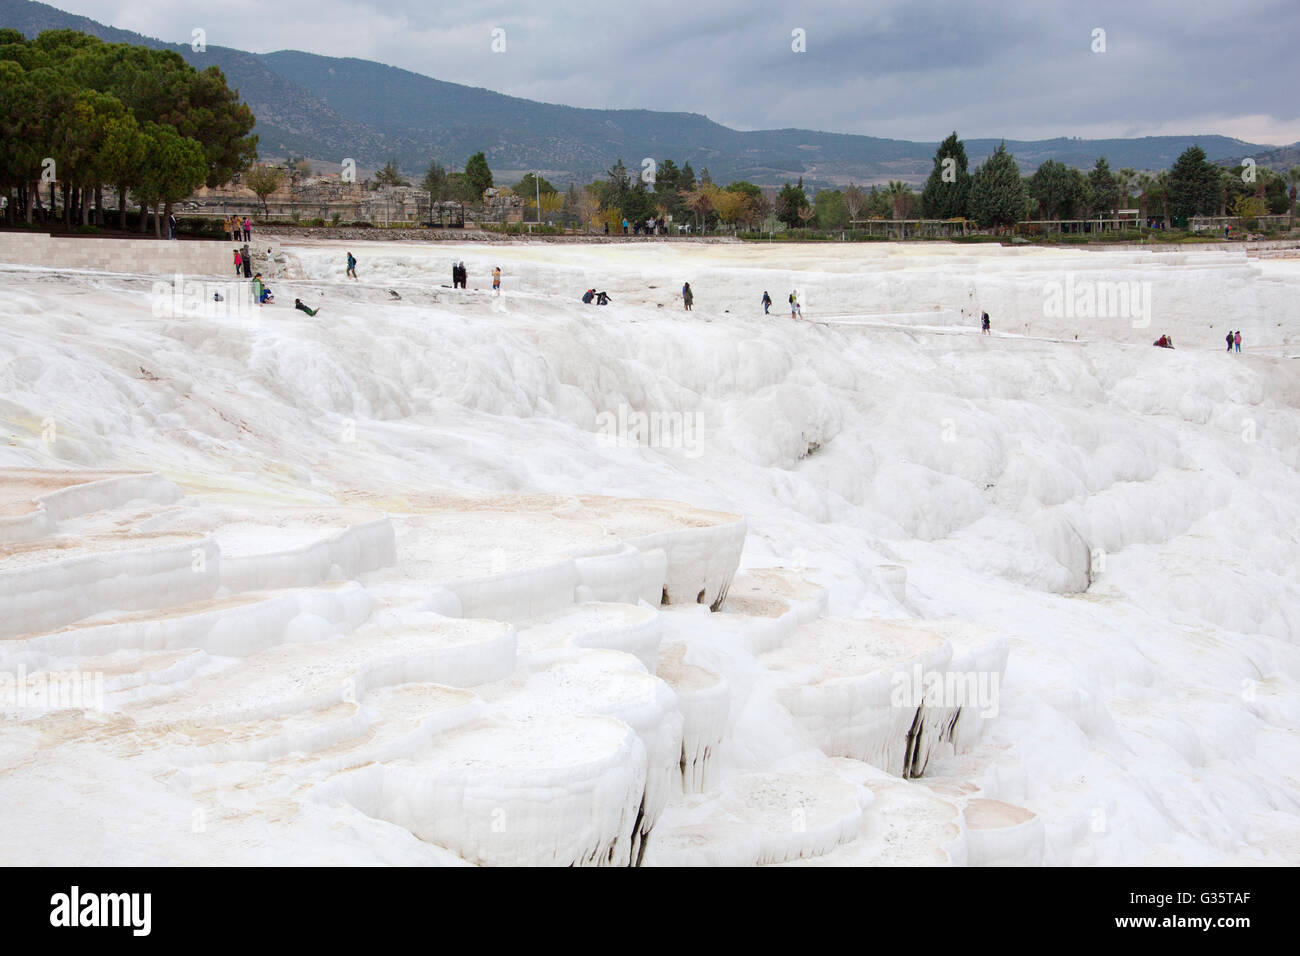 White terraces of carbonate minerals left by flowing water in Pamukkale, the World Heritage Site in Turkey. - Stock Image